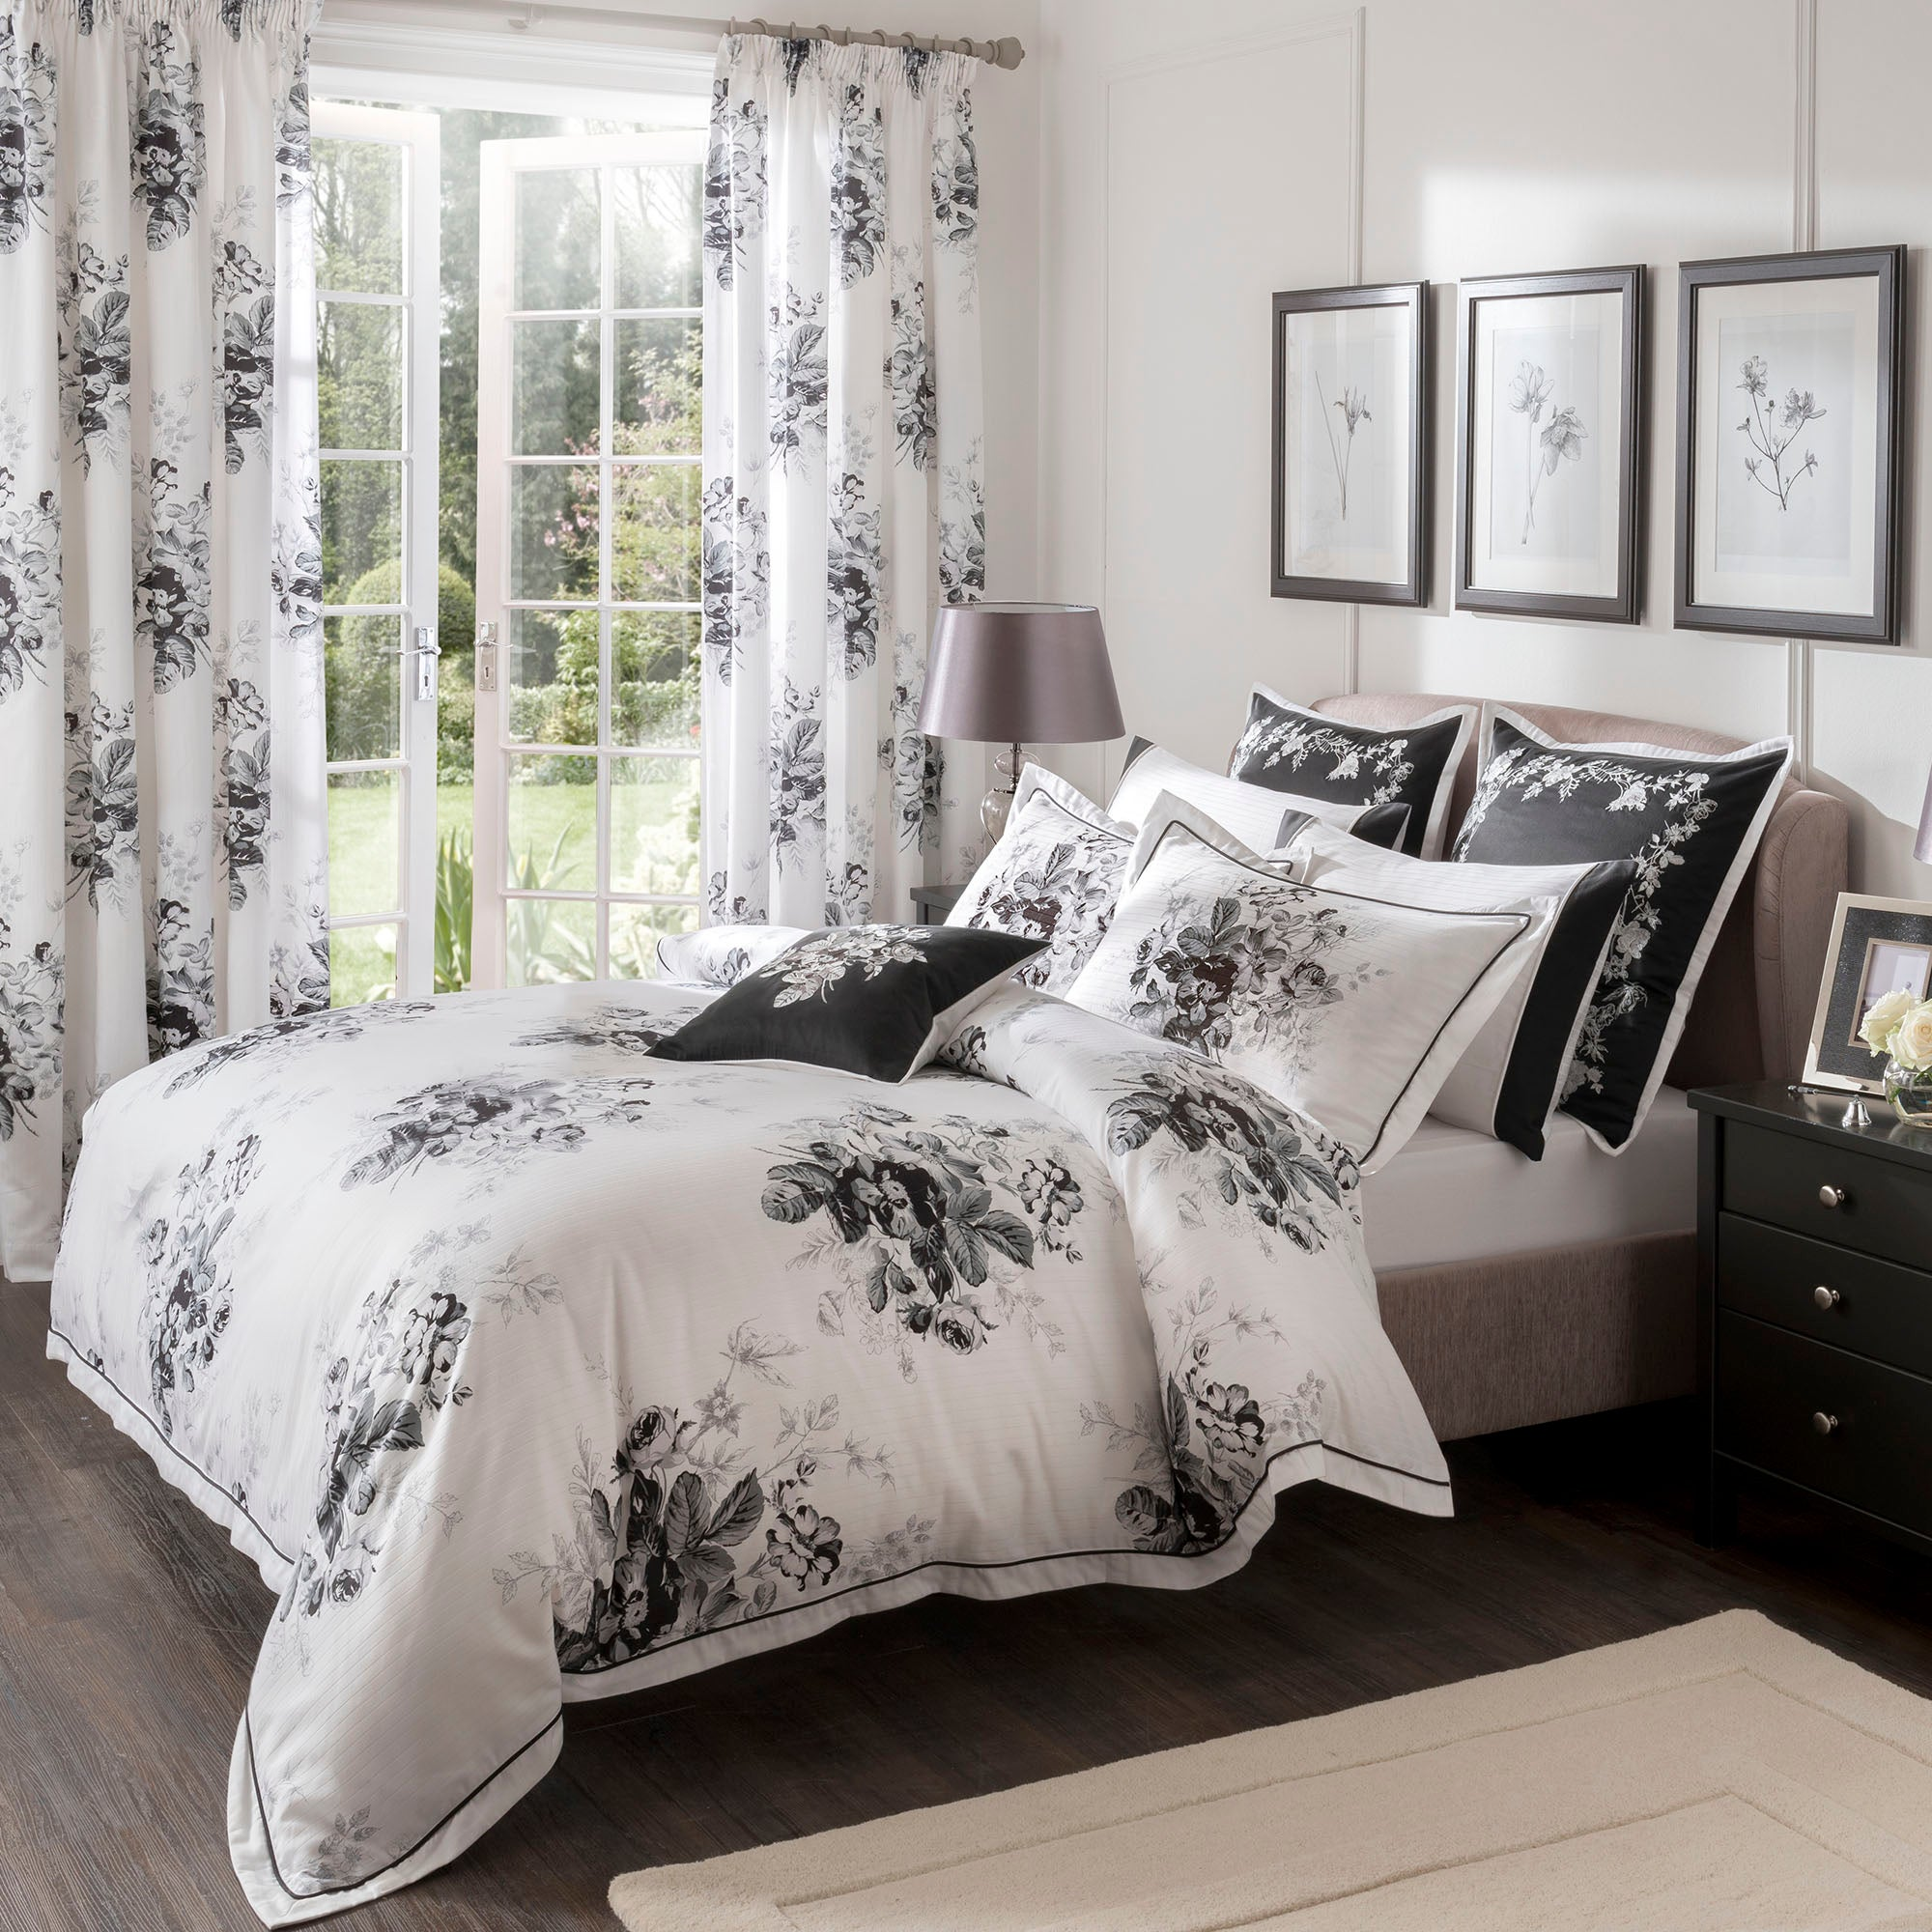 Dorma Black and White Gardenia Collection Duvet Cover